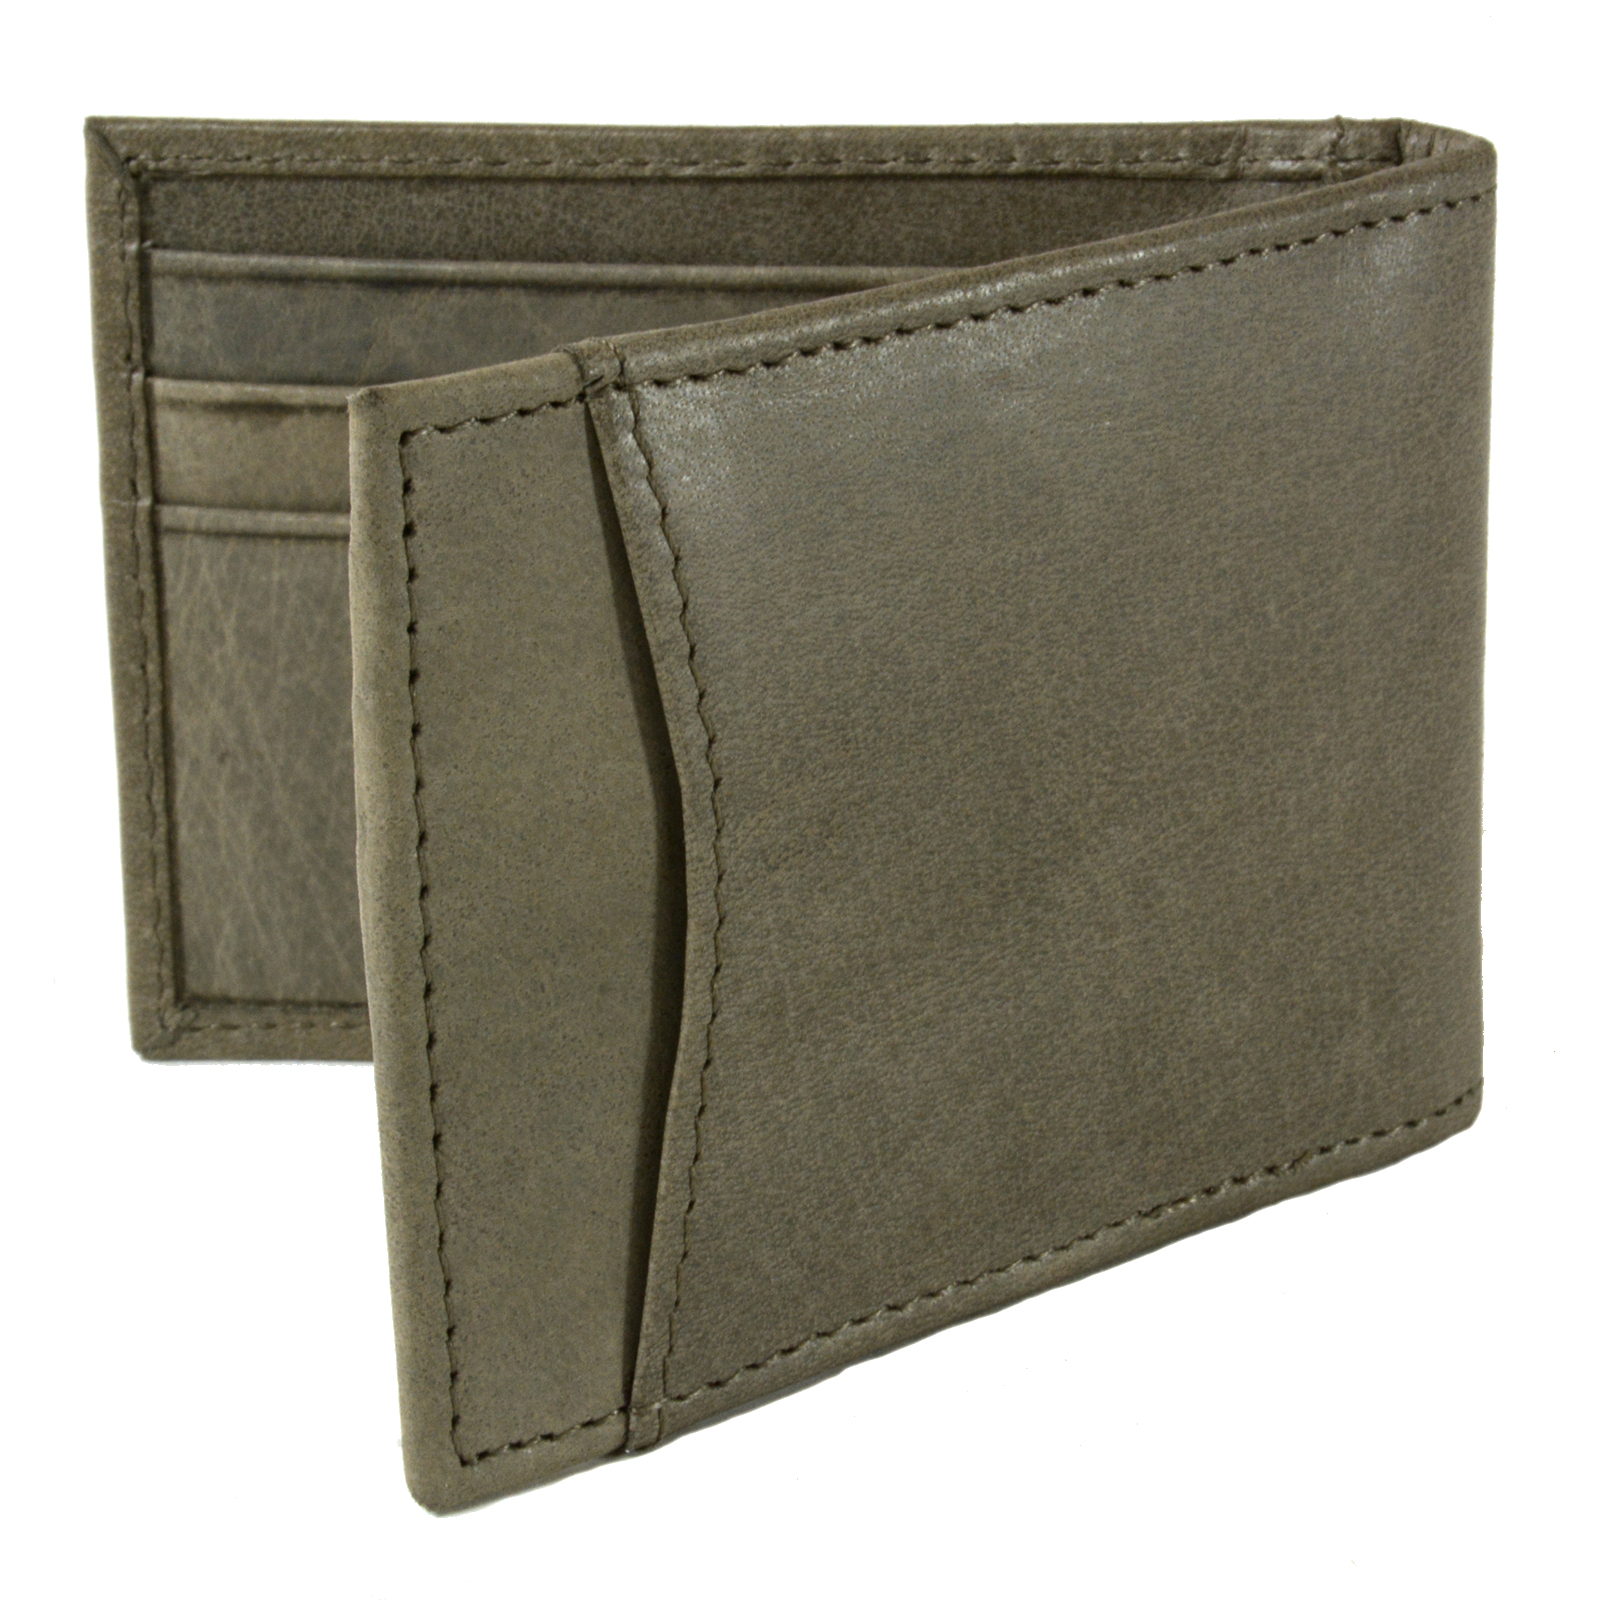 Alpine-Swiss-Mens-Bifold-Money-Clip-Spring-Loaded-Leather-ID-Front-Pocket-Wallet thumbnail 81